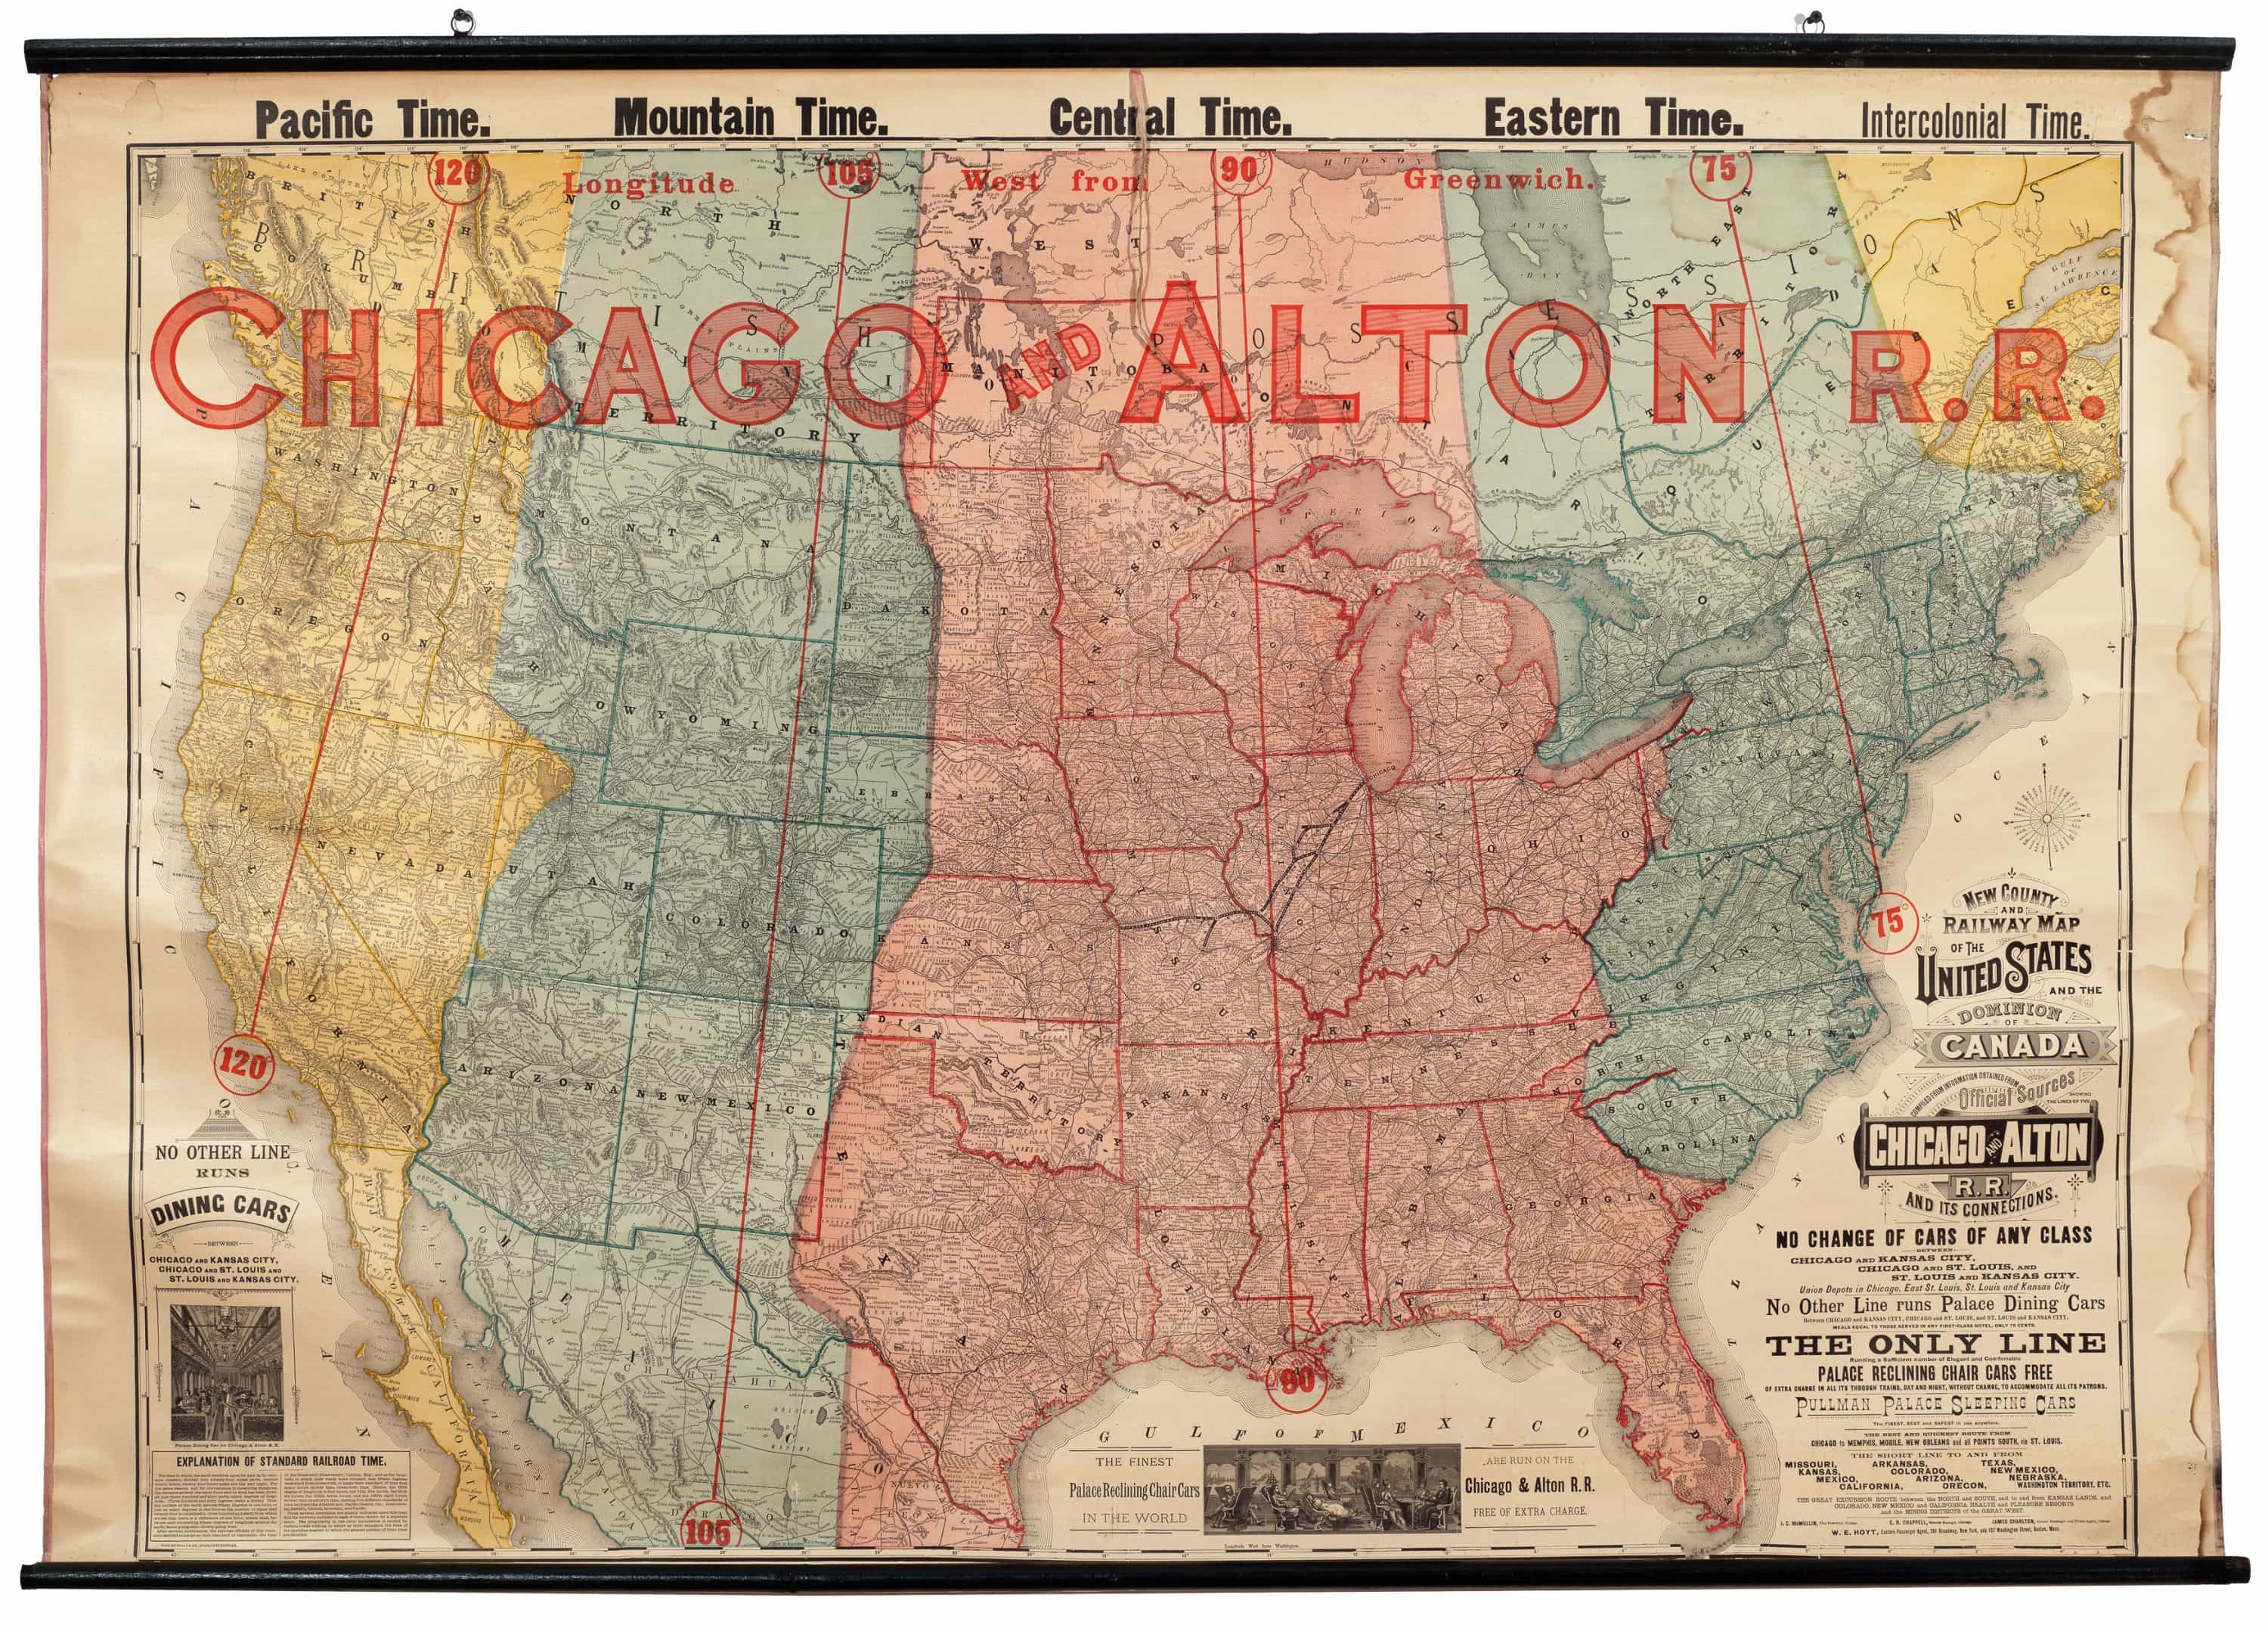 Striking Railroad Map Featuring New American Time Zones Rare - Railroad-us-map